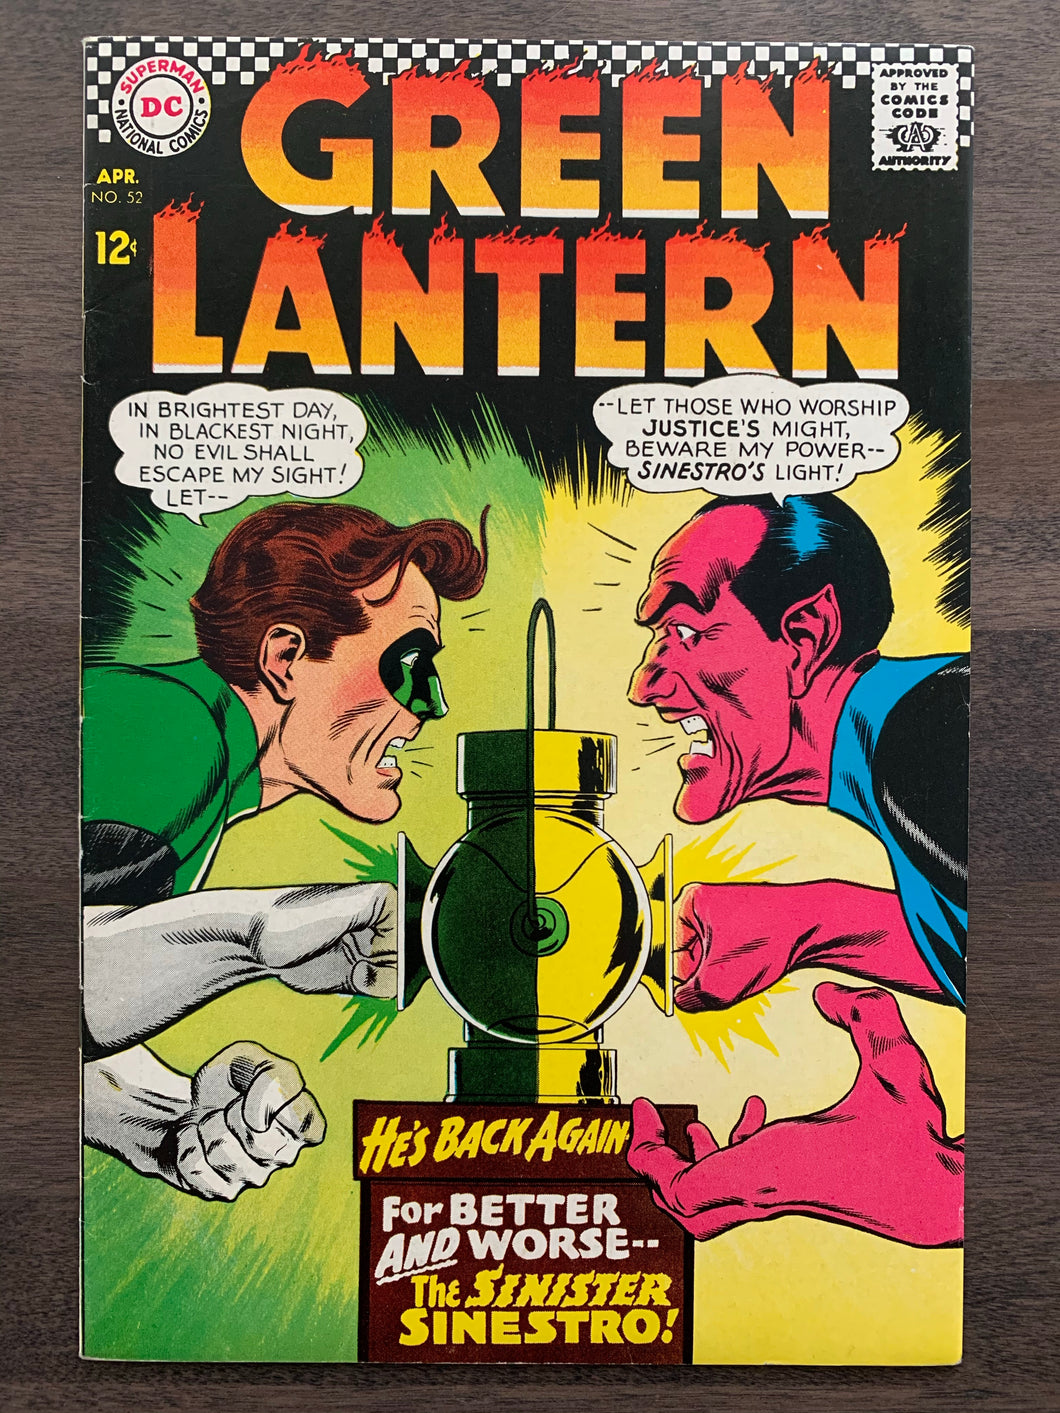 Green Lantern #52 - Golden Age Crossover